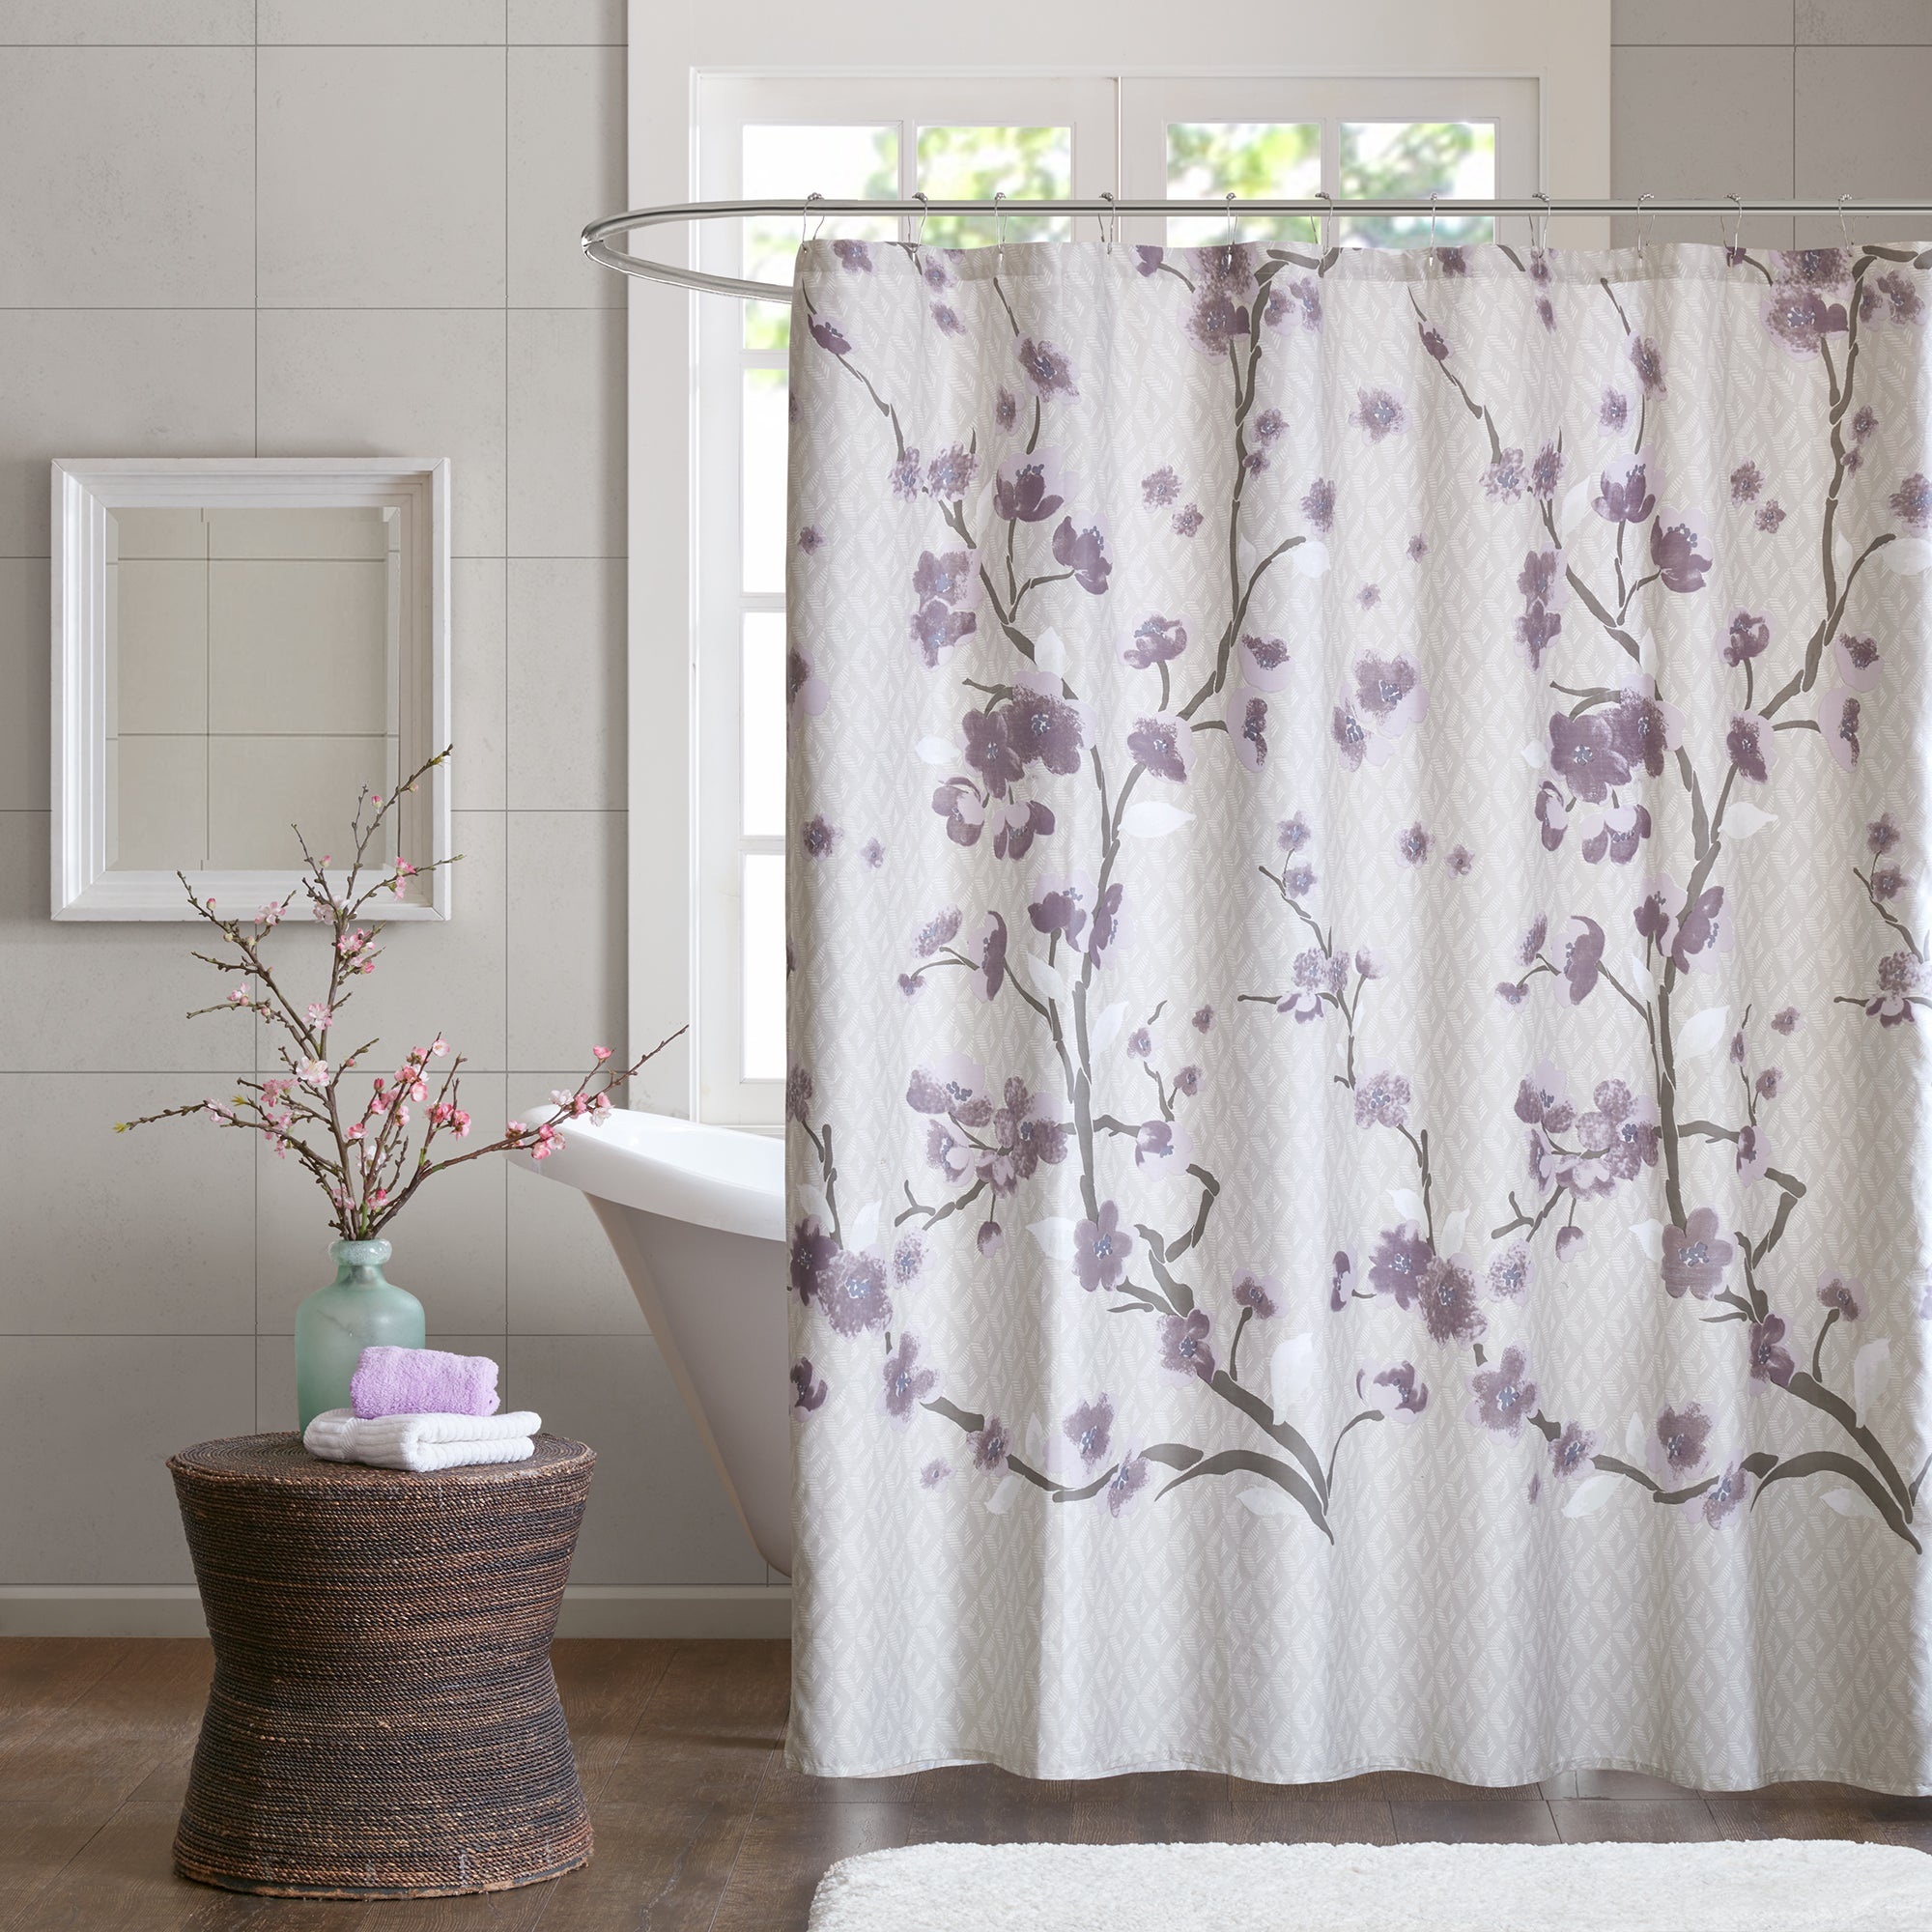 curtain deltaangelgroup curtains pine ideas furniture shower cone stall